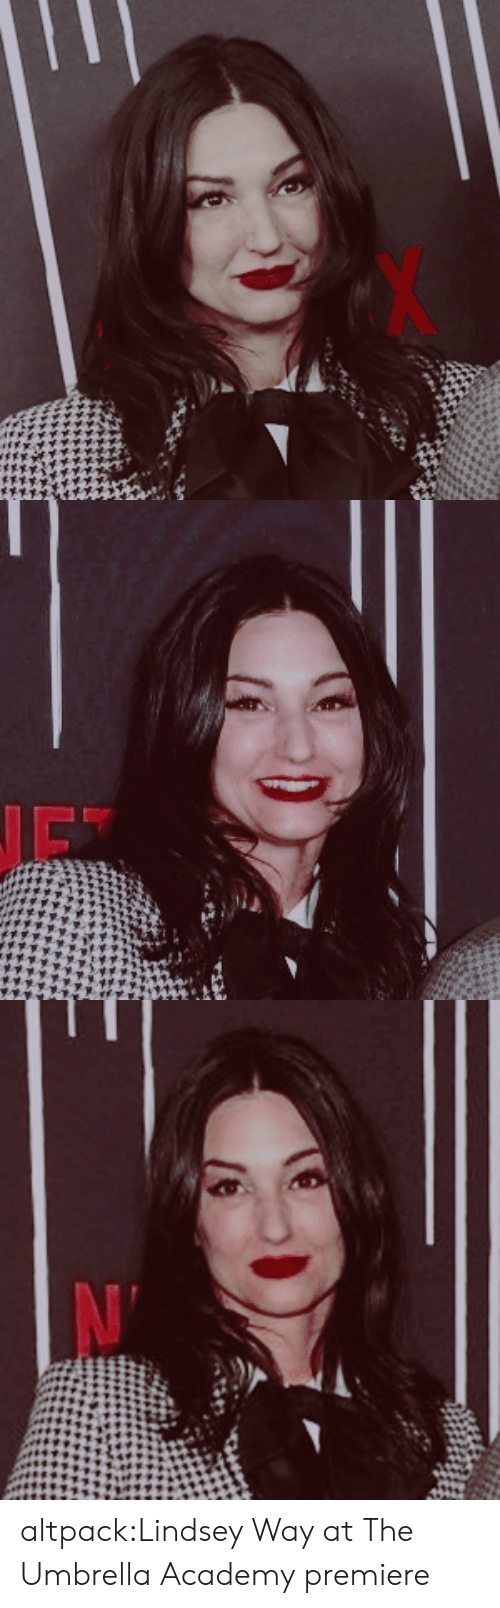 Tumblr, Academy, and Blog: altpack:Lindsey Way at The Umbrella Academy premiere